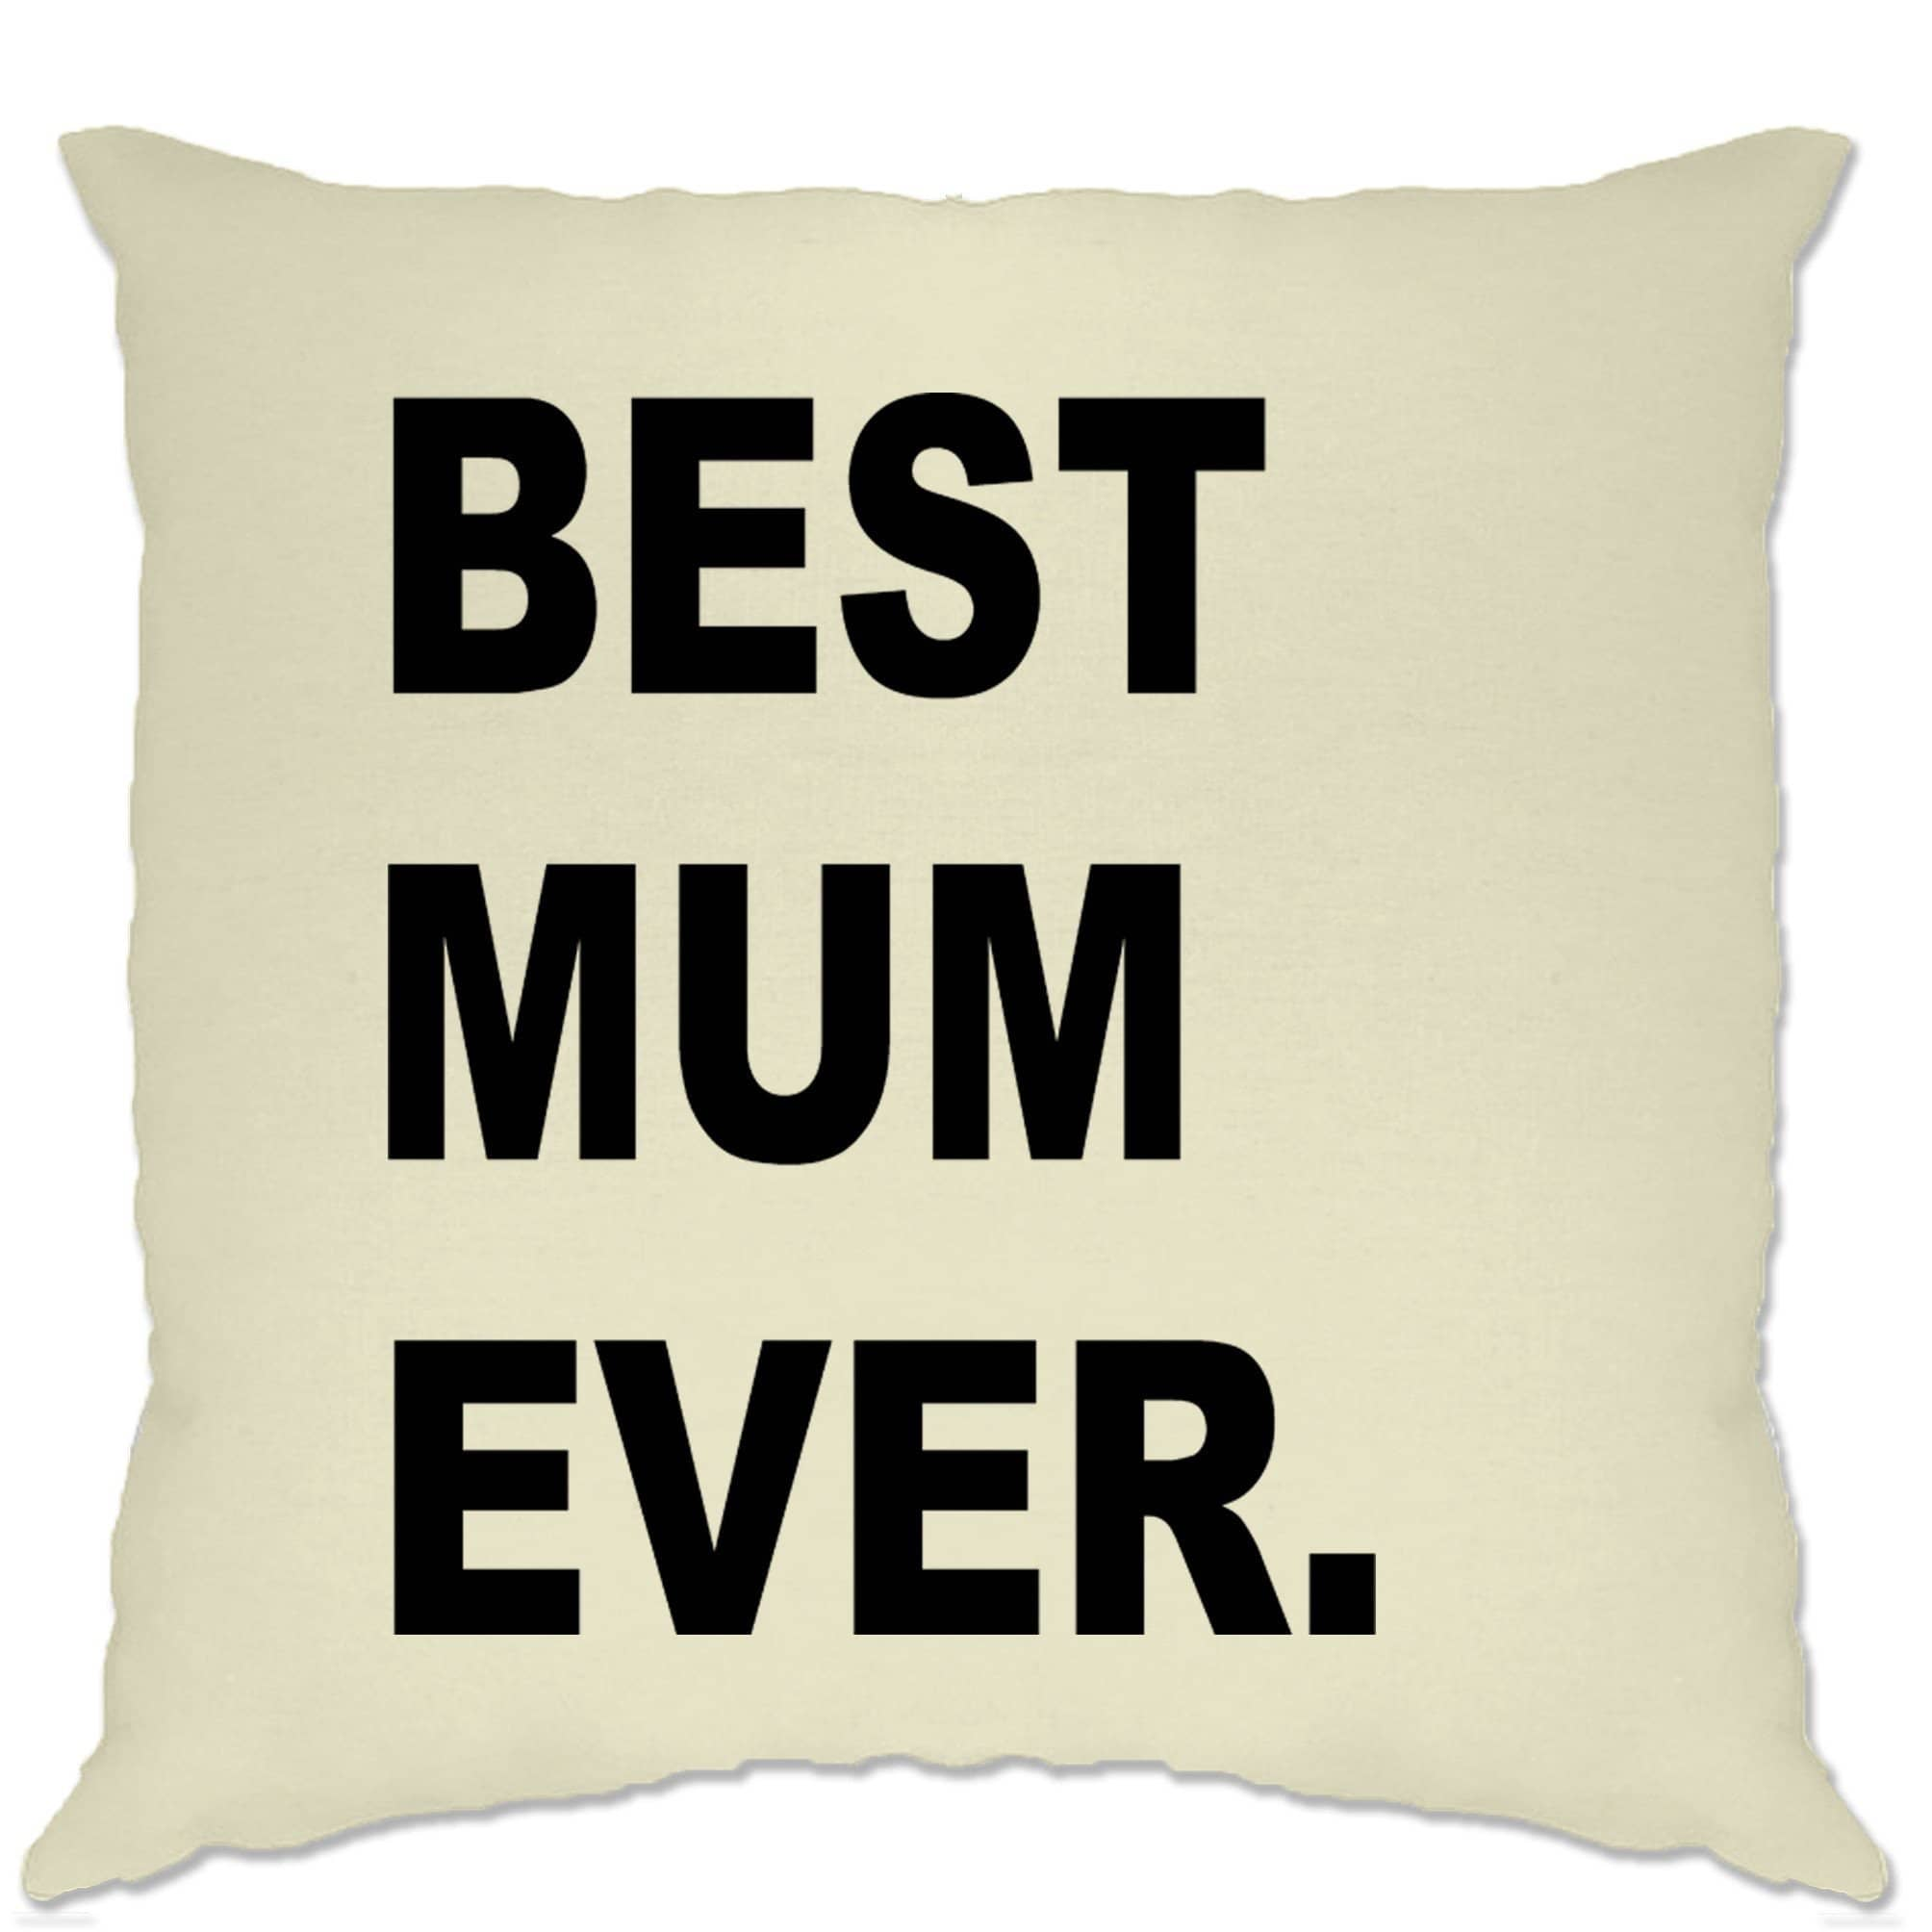 Best Mum Ever Cushion Cover Parent Family Slogan